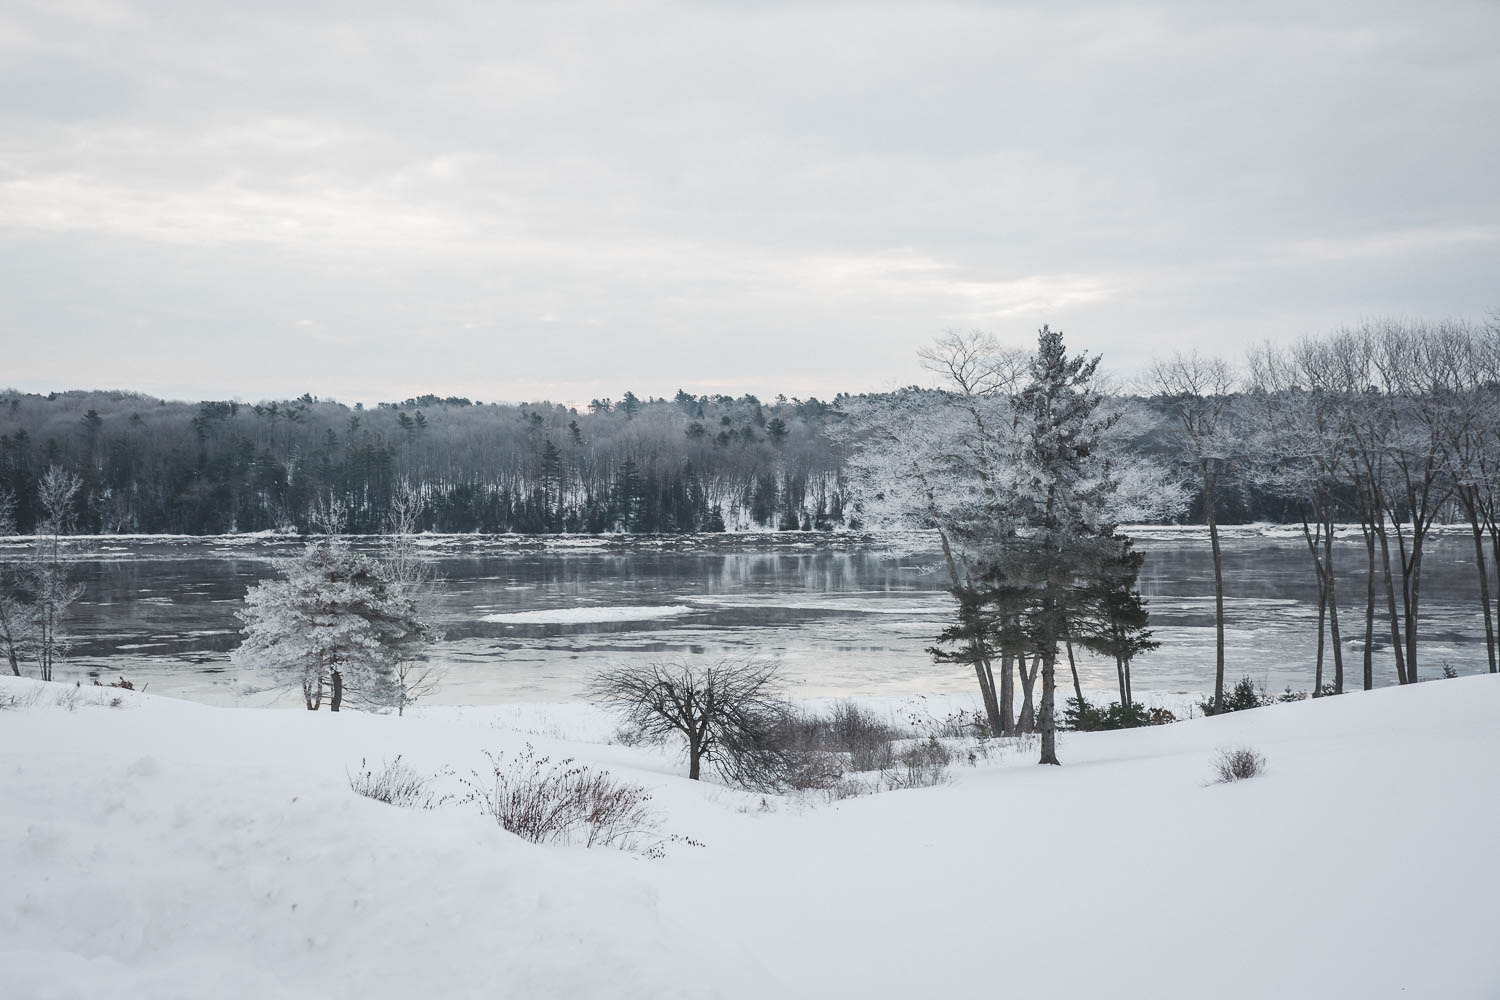 January on the Penobscot